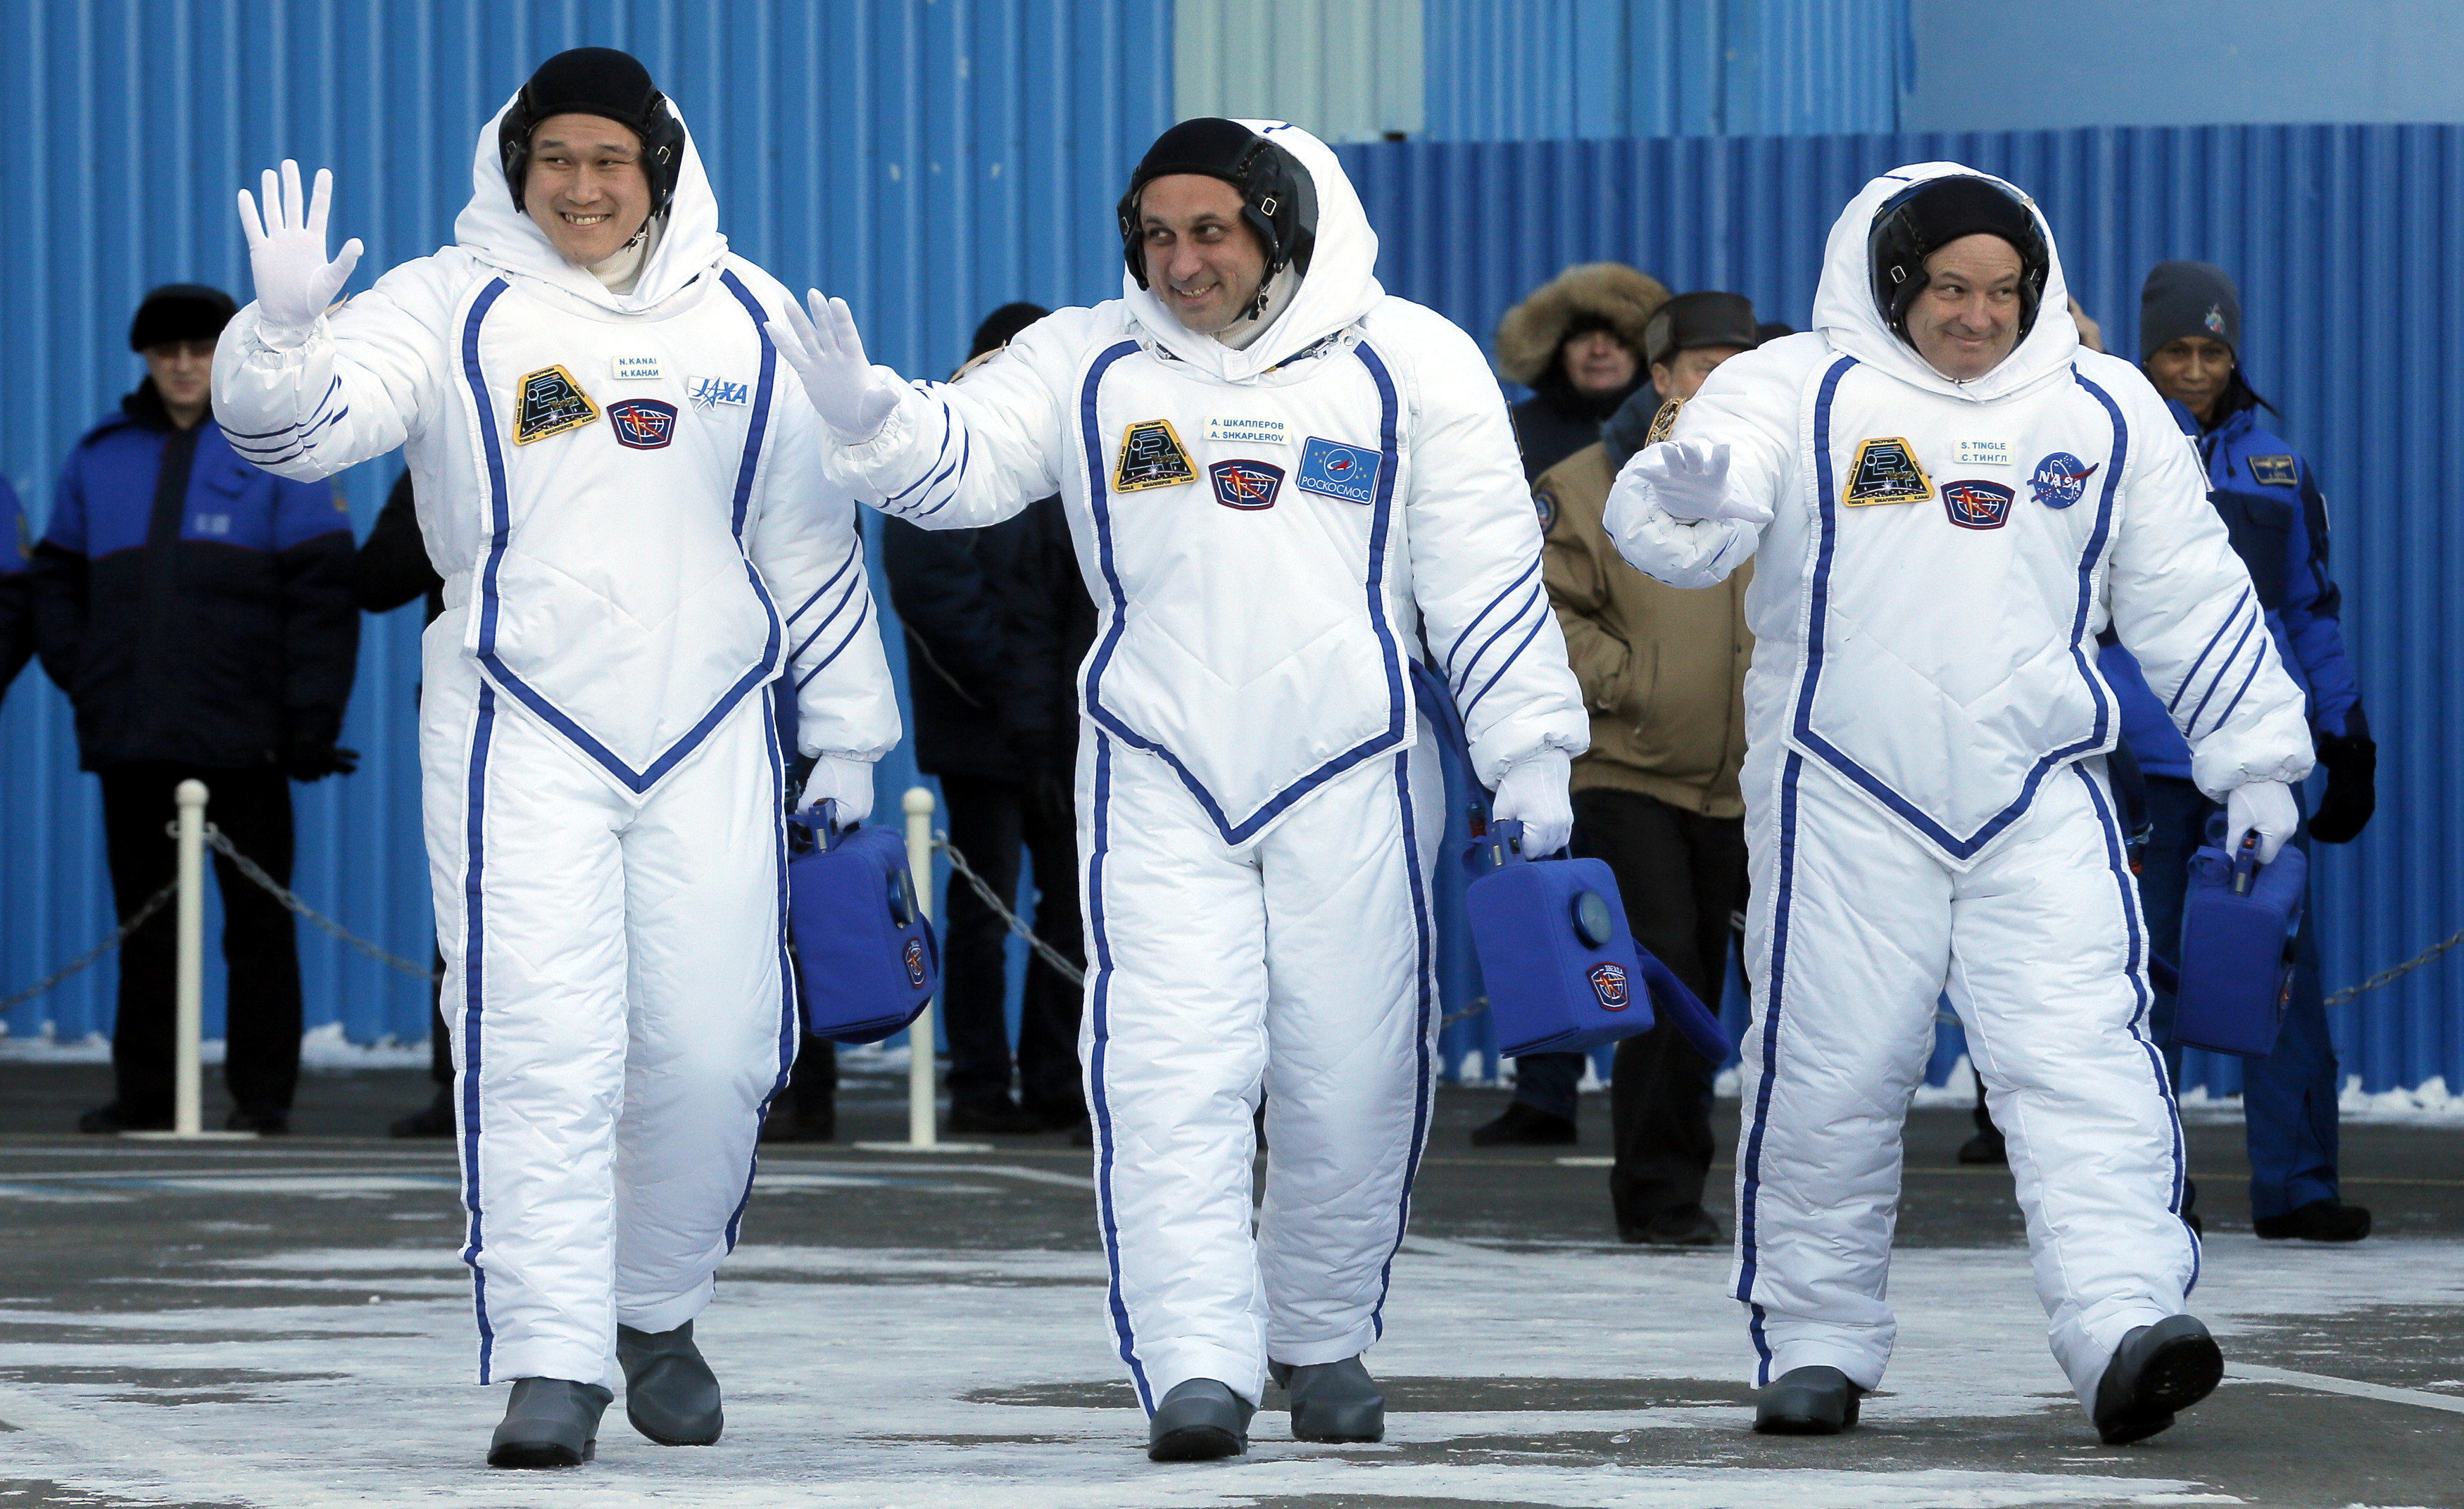 Norishige Kanai of the Japan Aerospace Exploration Agency, Roscosmos cosmonaut Anton Shkaplerov and NASA astronaut Scott Tingle during a send-off ceremony to the ISS in December.